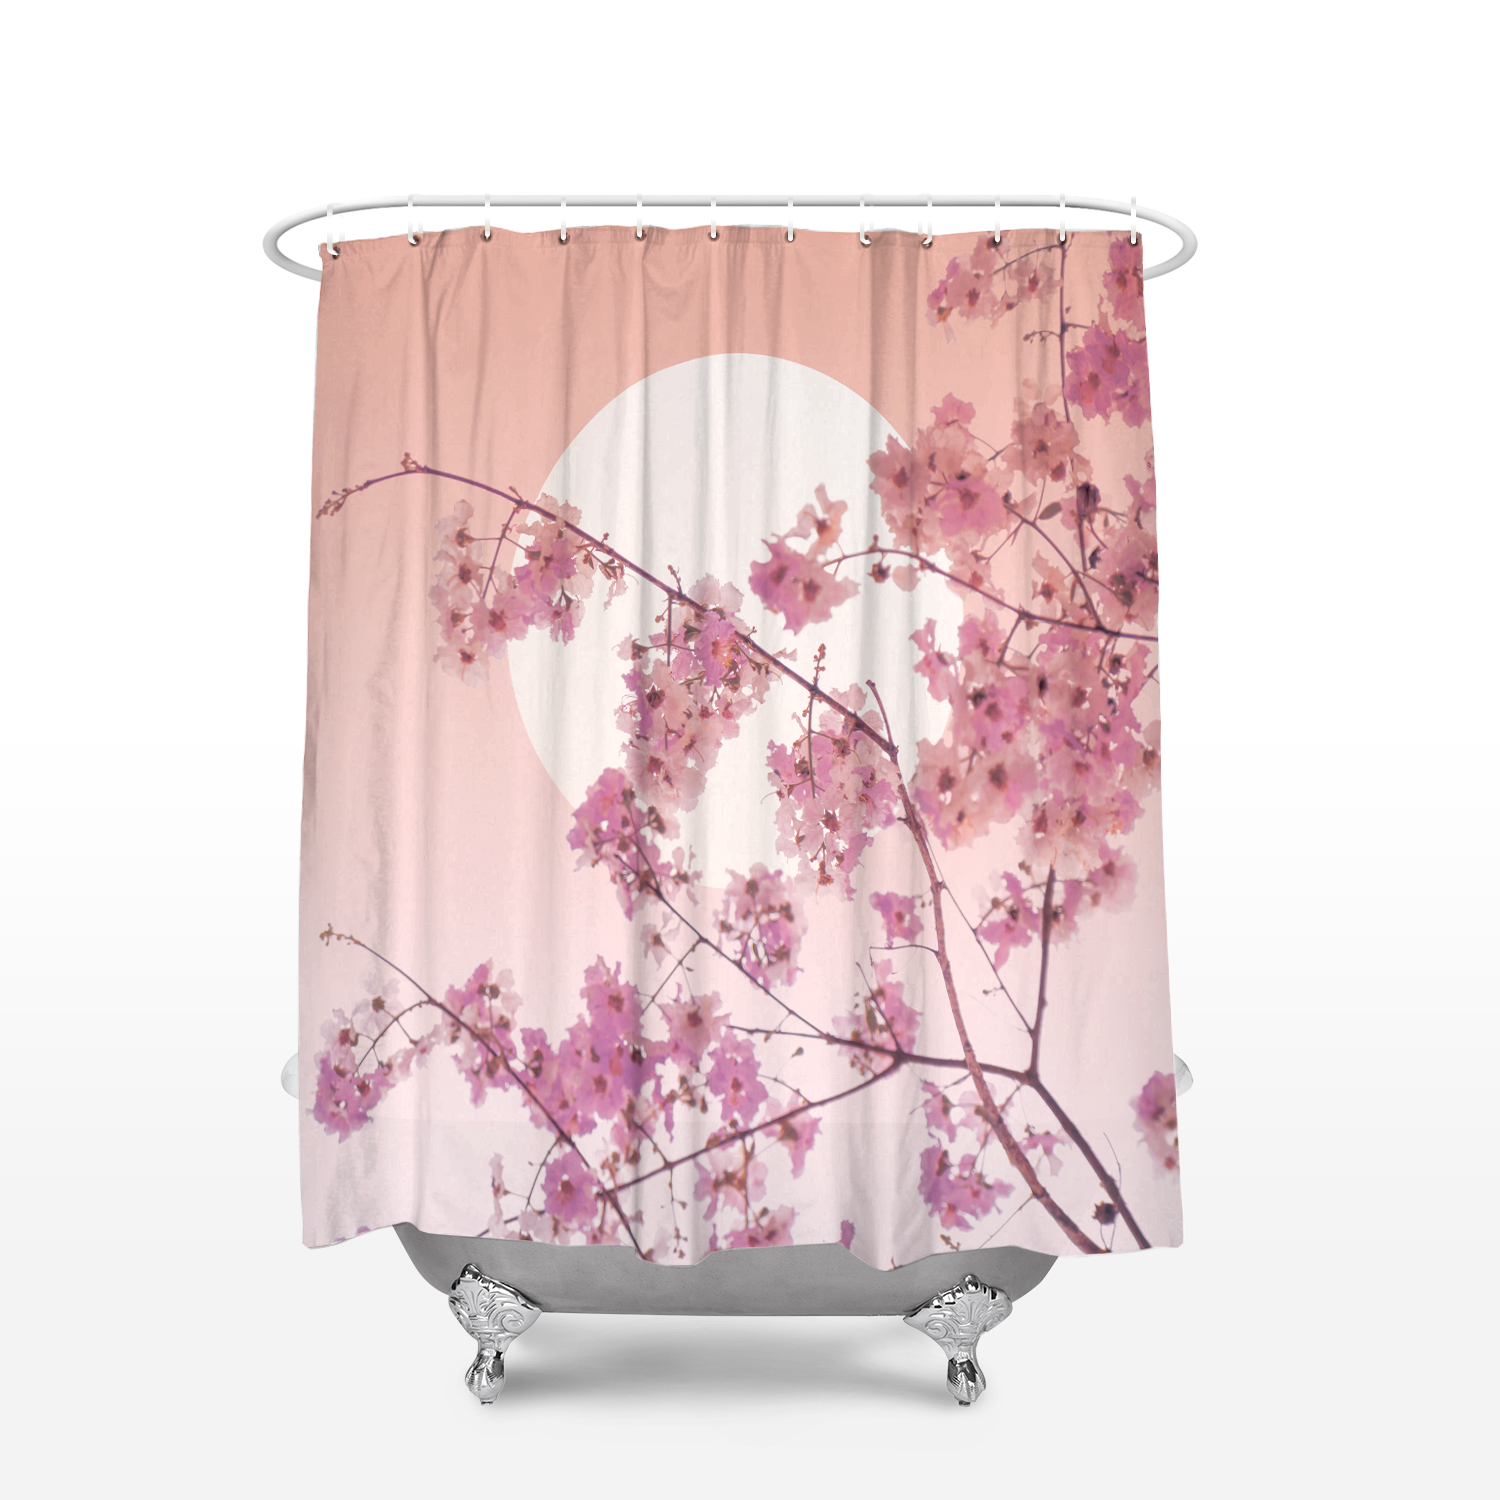 CHARMHOME Japanese Style Bathroom Decor Fabric Curtains Cherry Blossom  Sakura Tree Branches Waterproof Polyester Shower Curtain In Shower Curtains  From Home ...